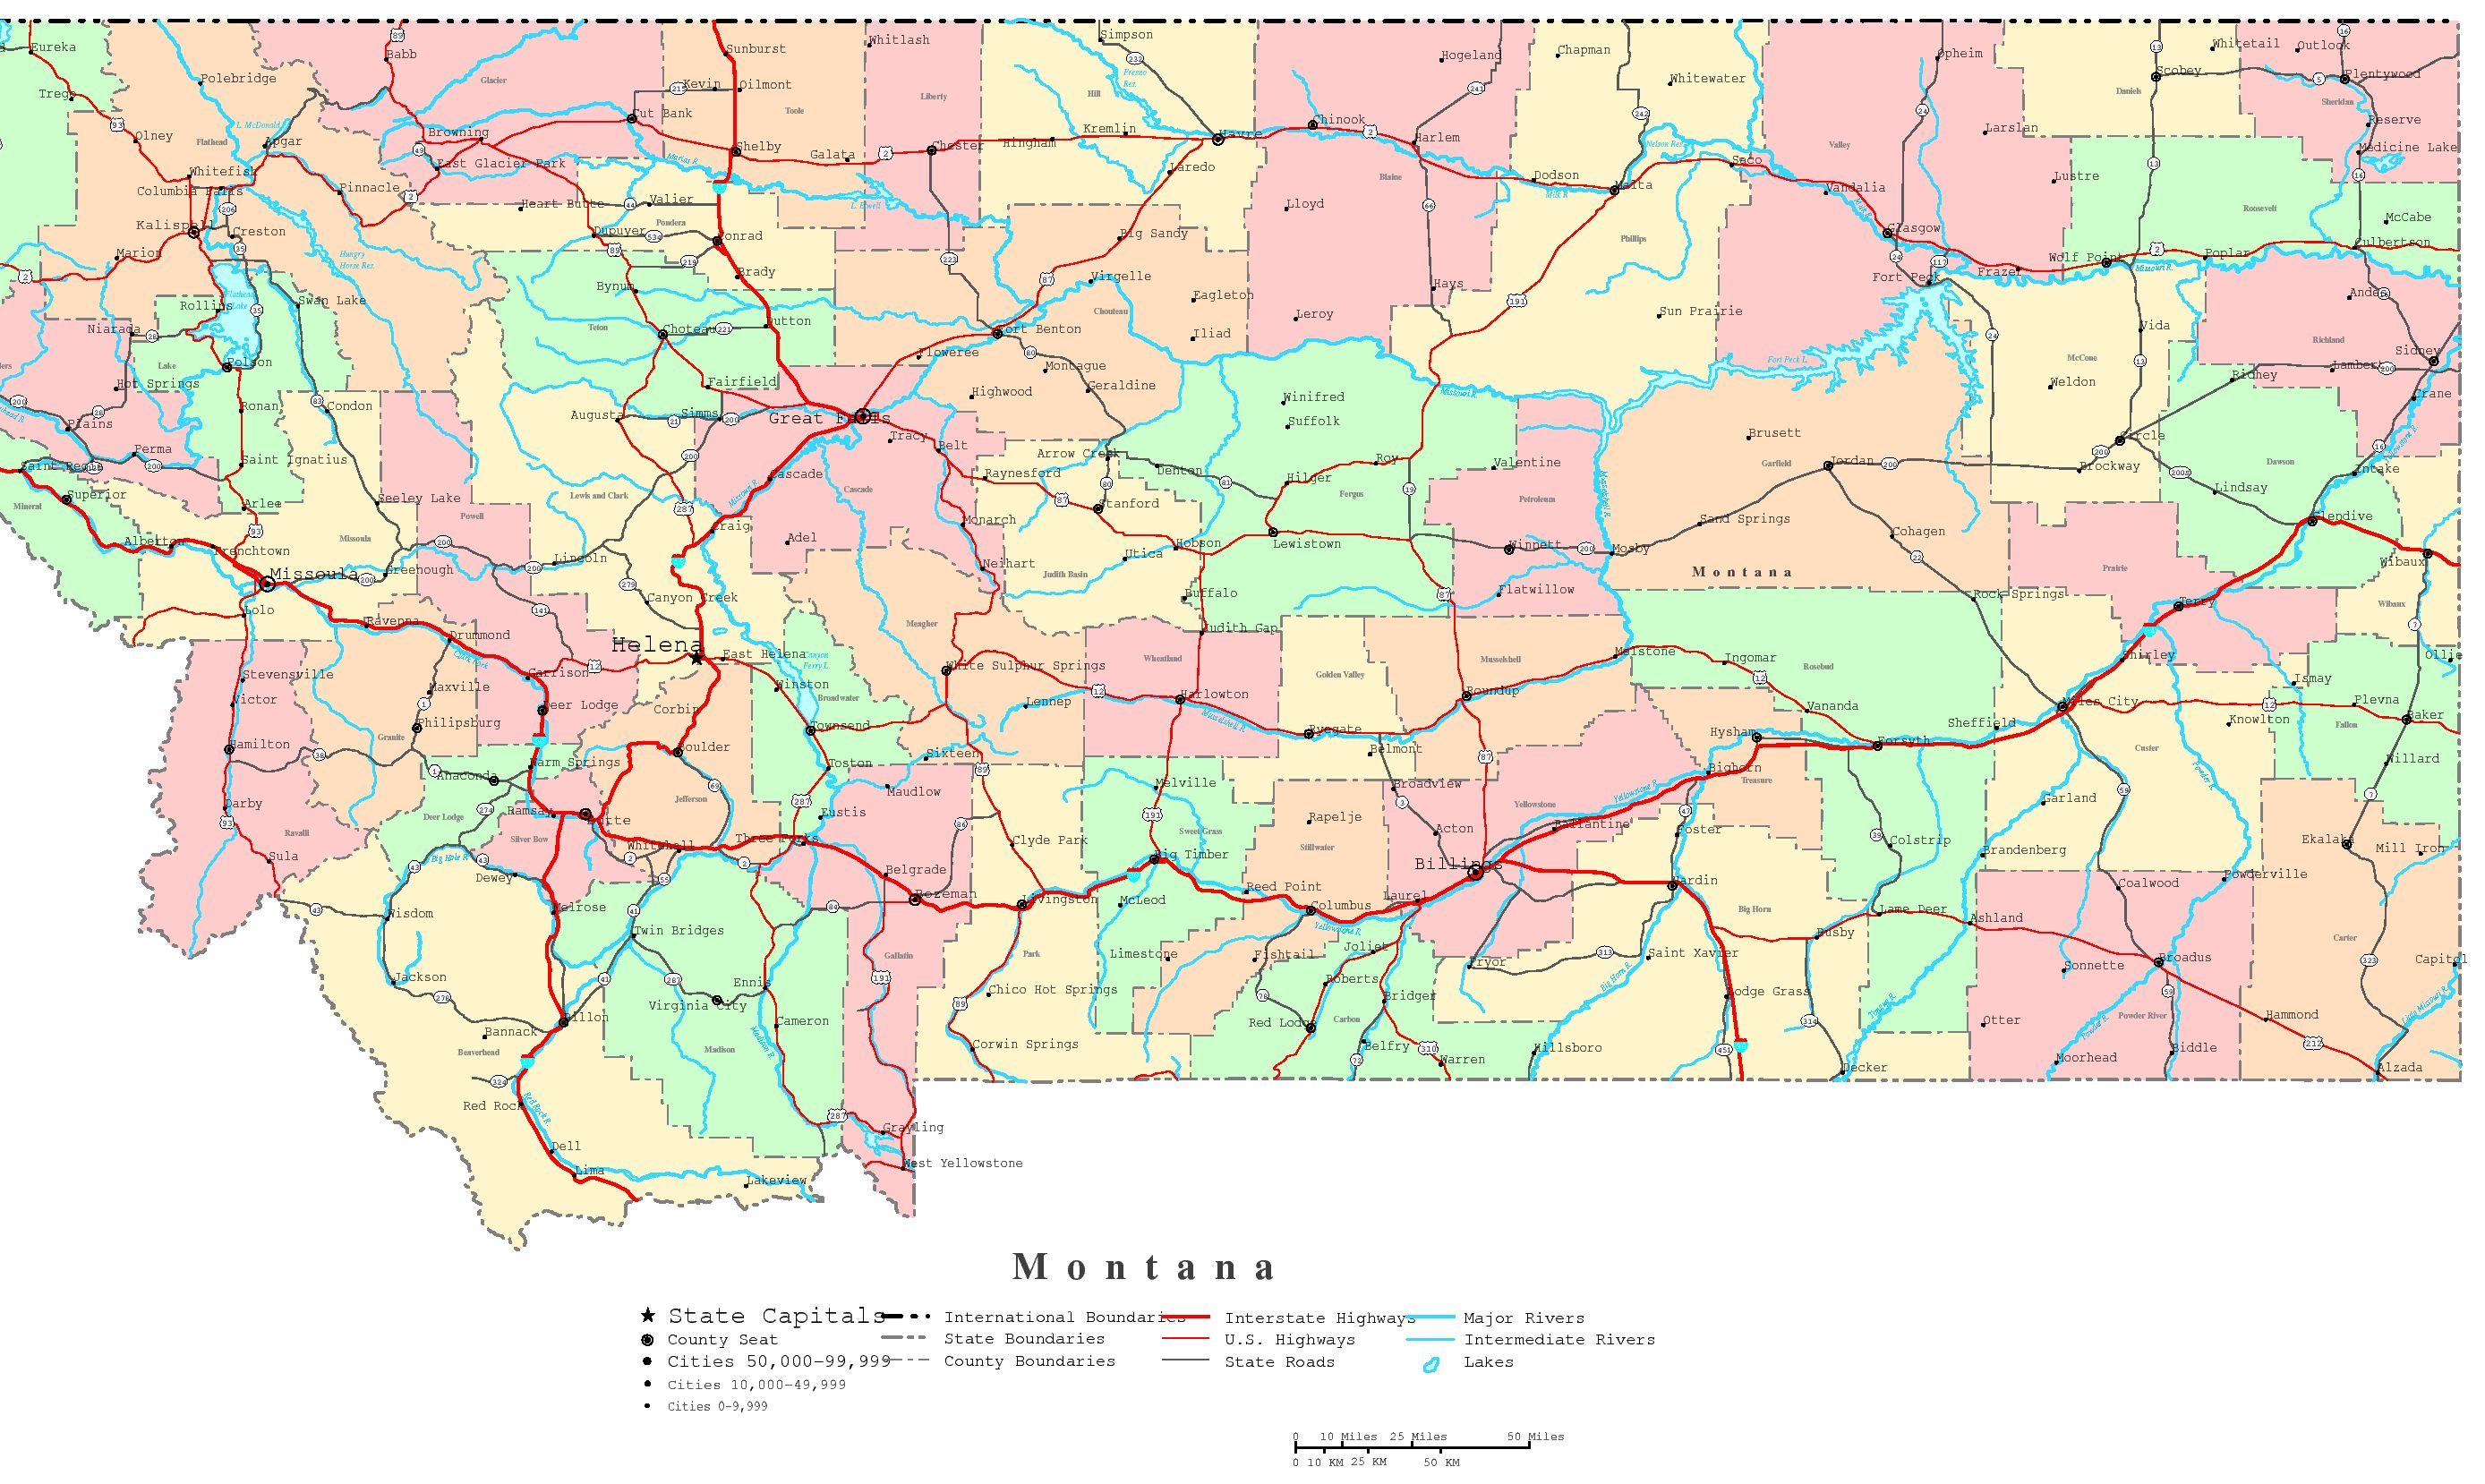 Montana Printable Map - Montana on us map